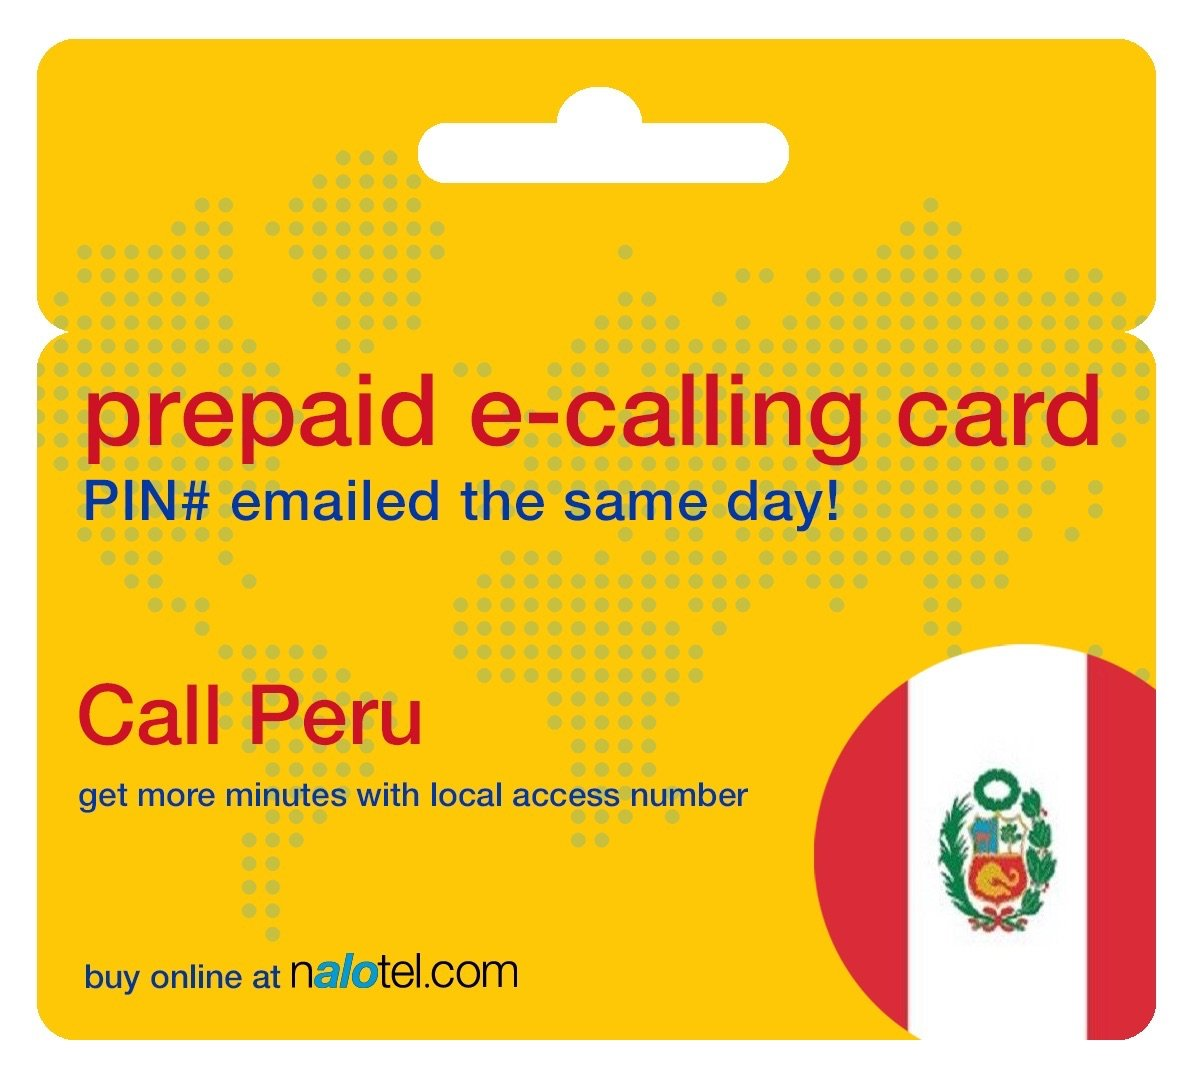 Prepaid Phone Card - Cheap International E-Calling Card $10 for Peru with same day emailed PIN, no postage necessary